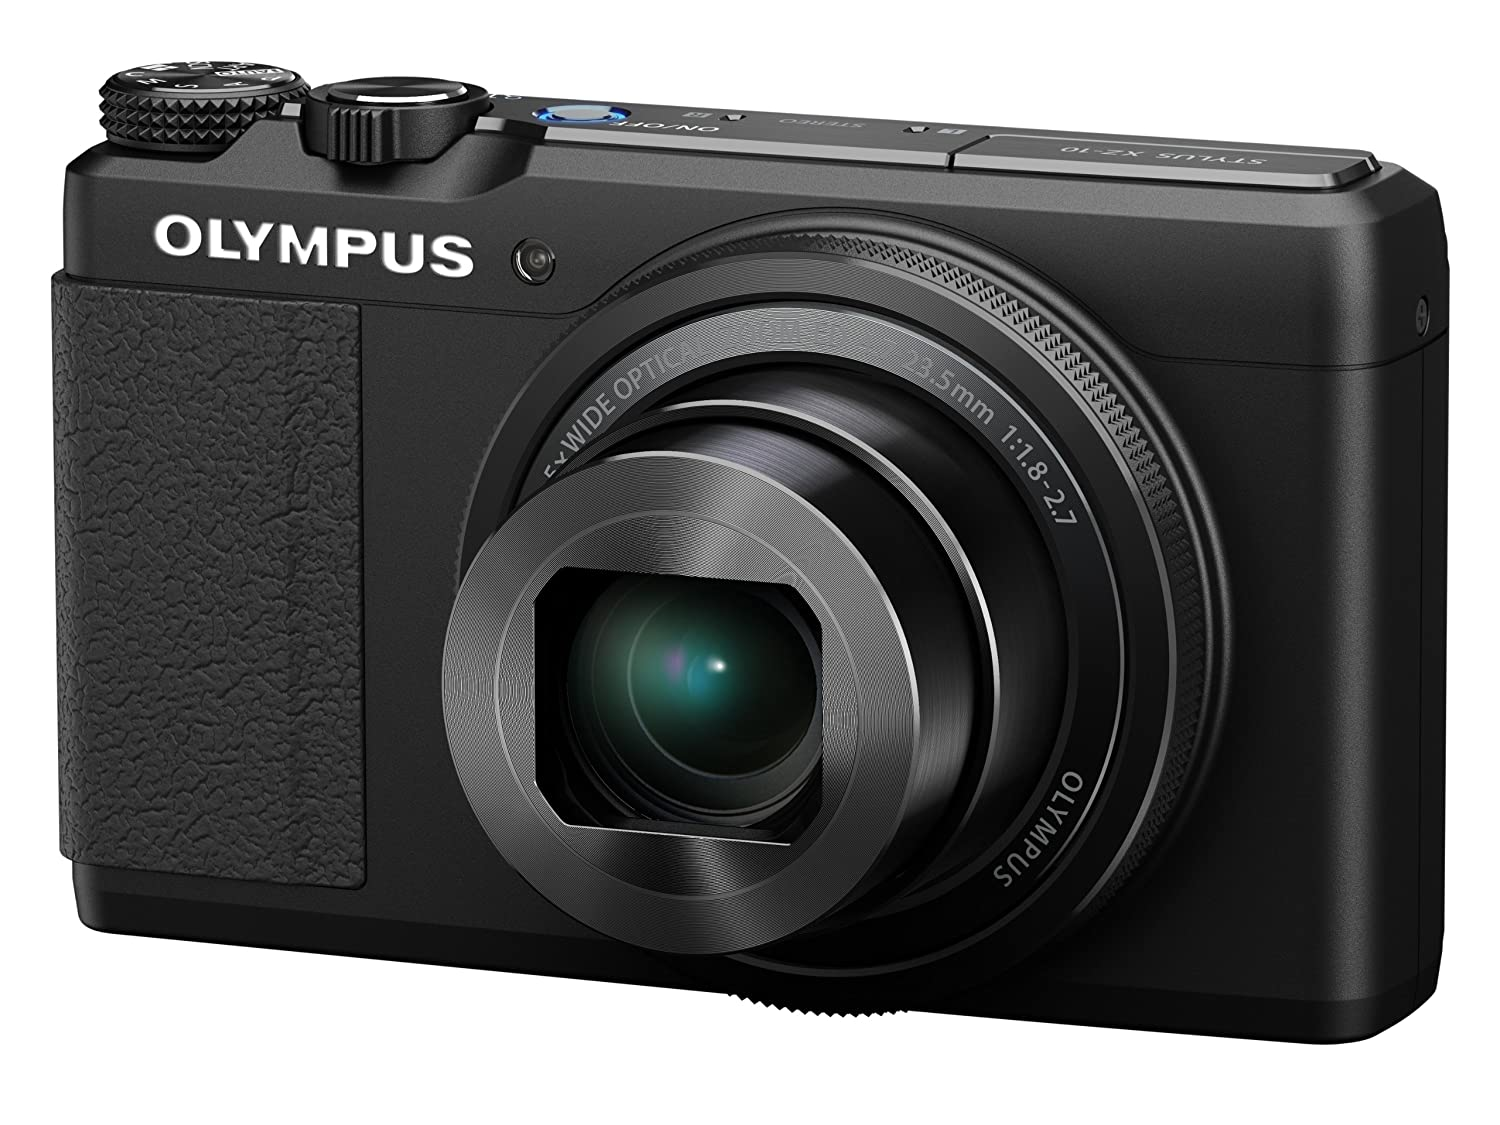 Olympus STYLUS XZ-10 Digital Camera - Black (12MP, 5x i.Zuiko Wide Optical Zoom) 3 inch Touch LCD